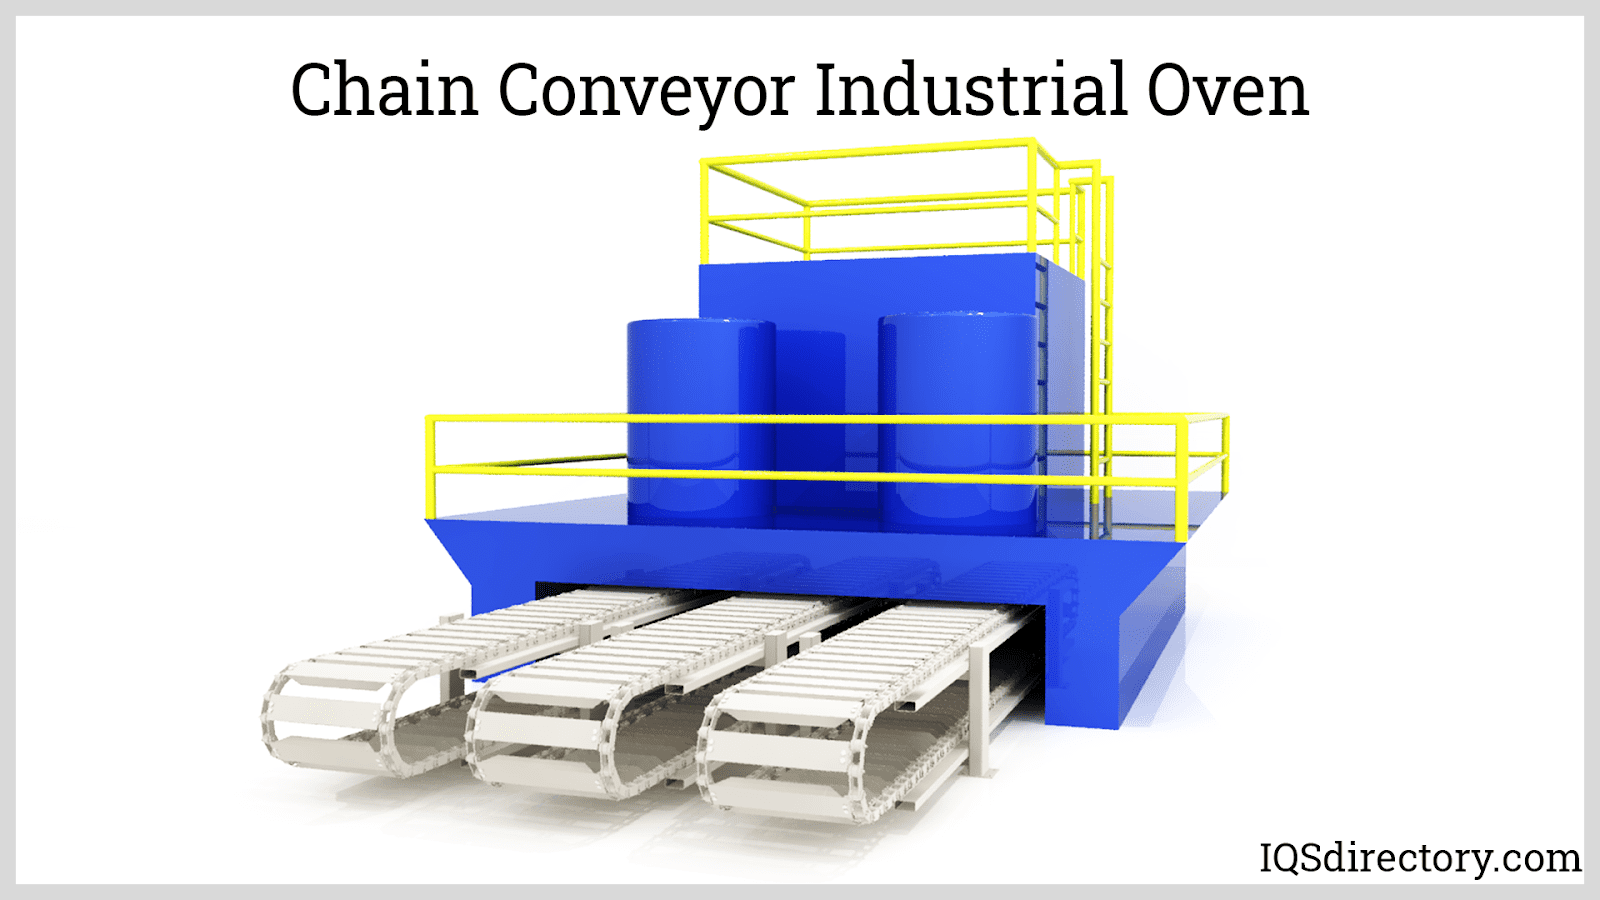 Chain Conveyor Industrial Oven